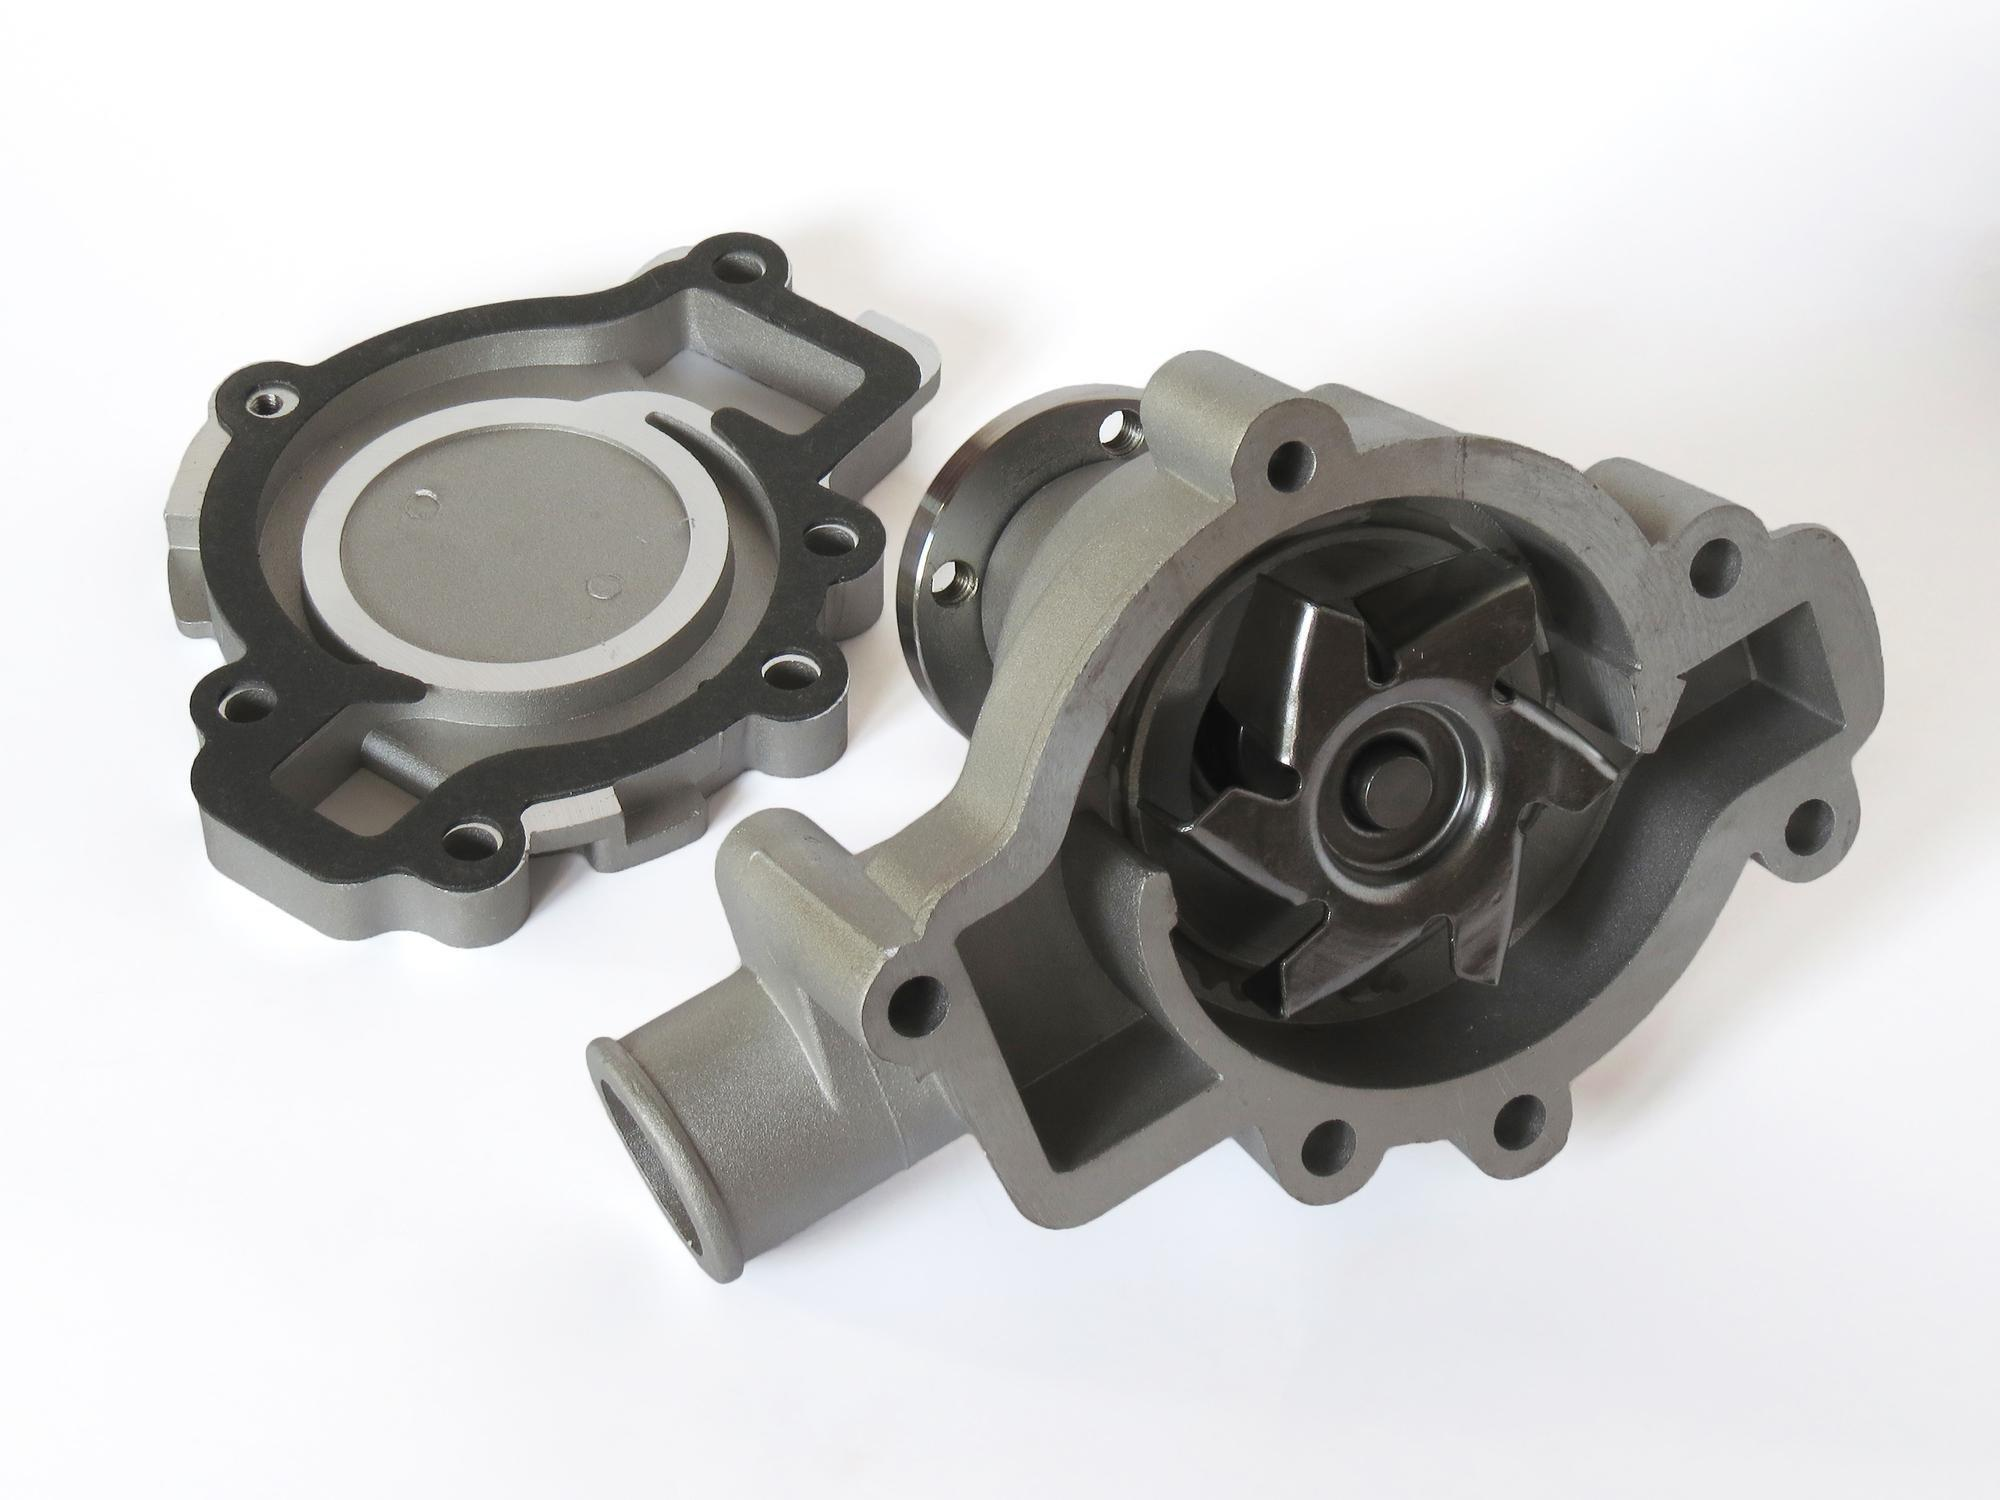 How Does A Water Pump Works In A Car?